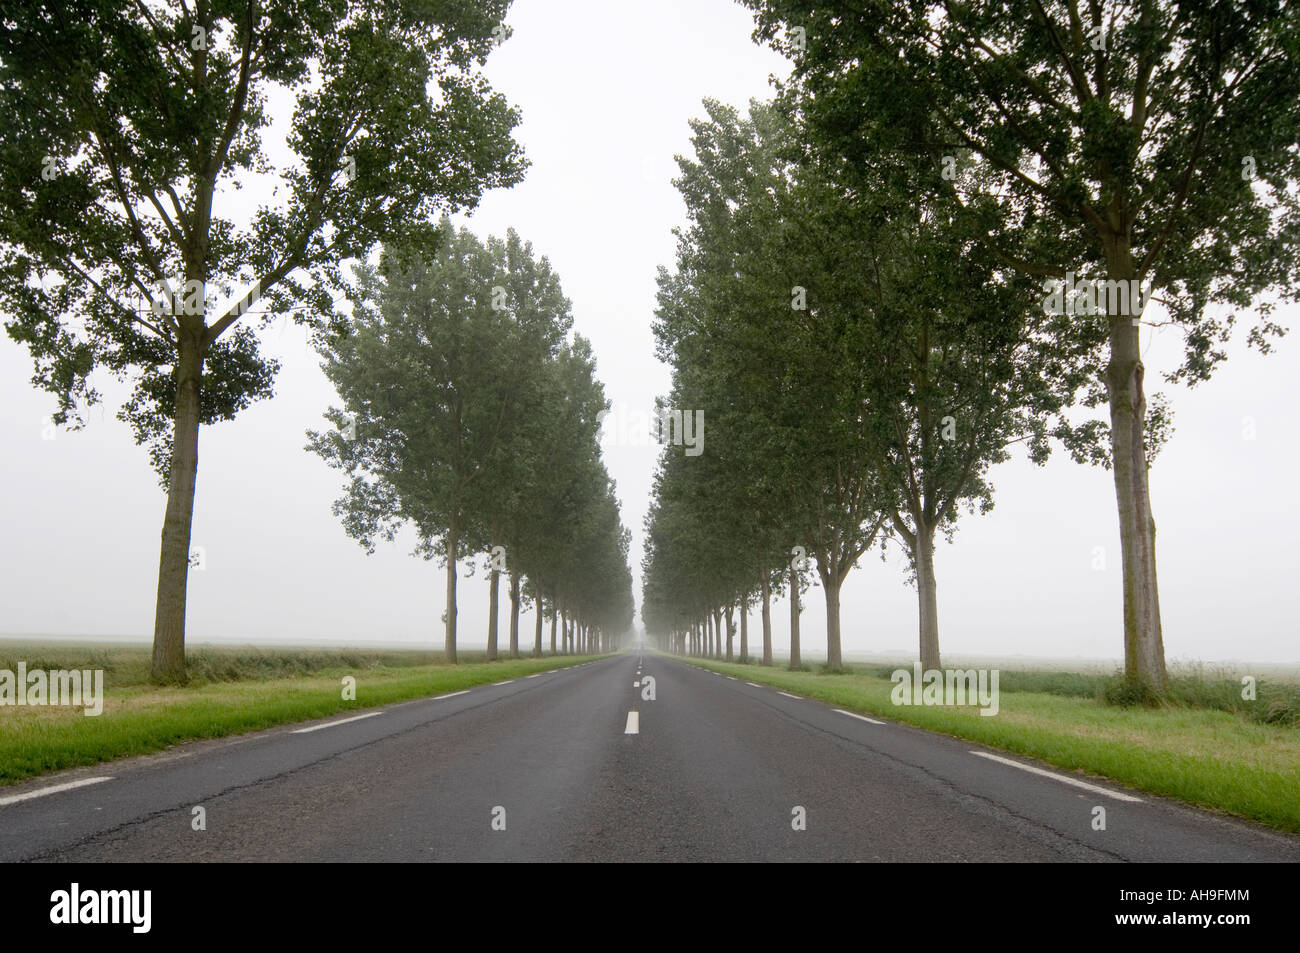 Long Straight Road with trees Stock Photo, Royalty Free Image ... for Straight Road With Trees  70ref